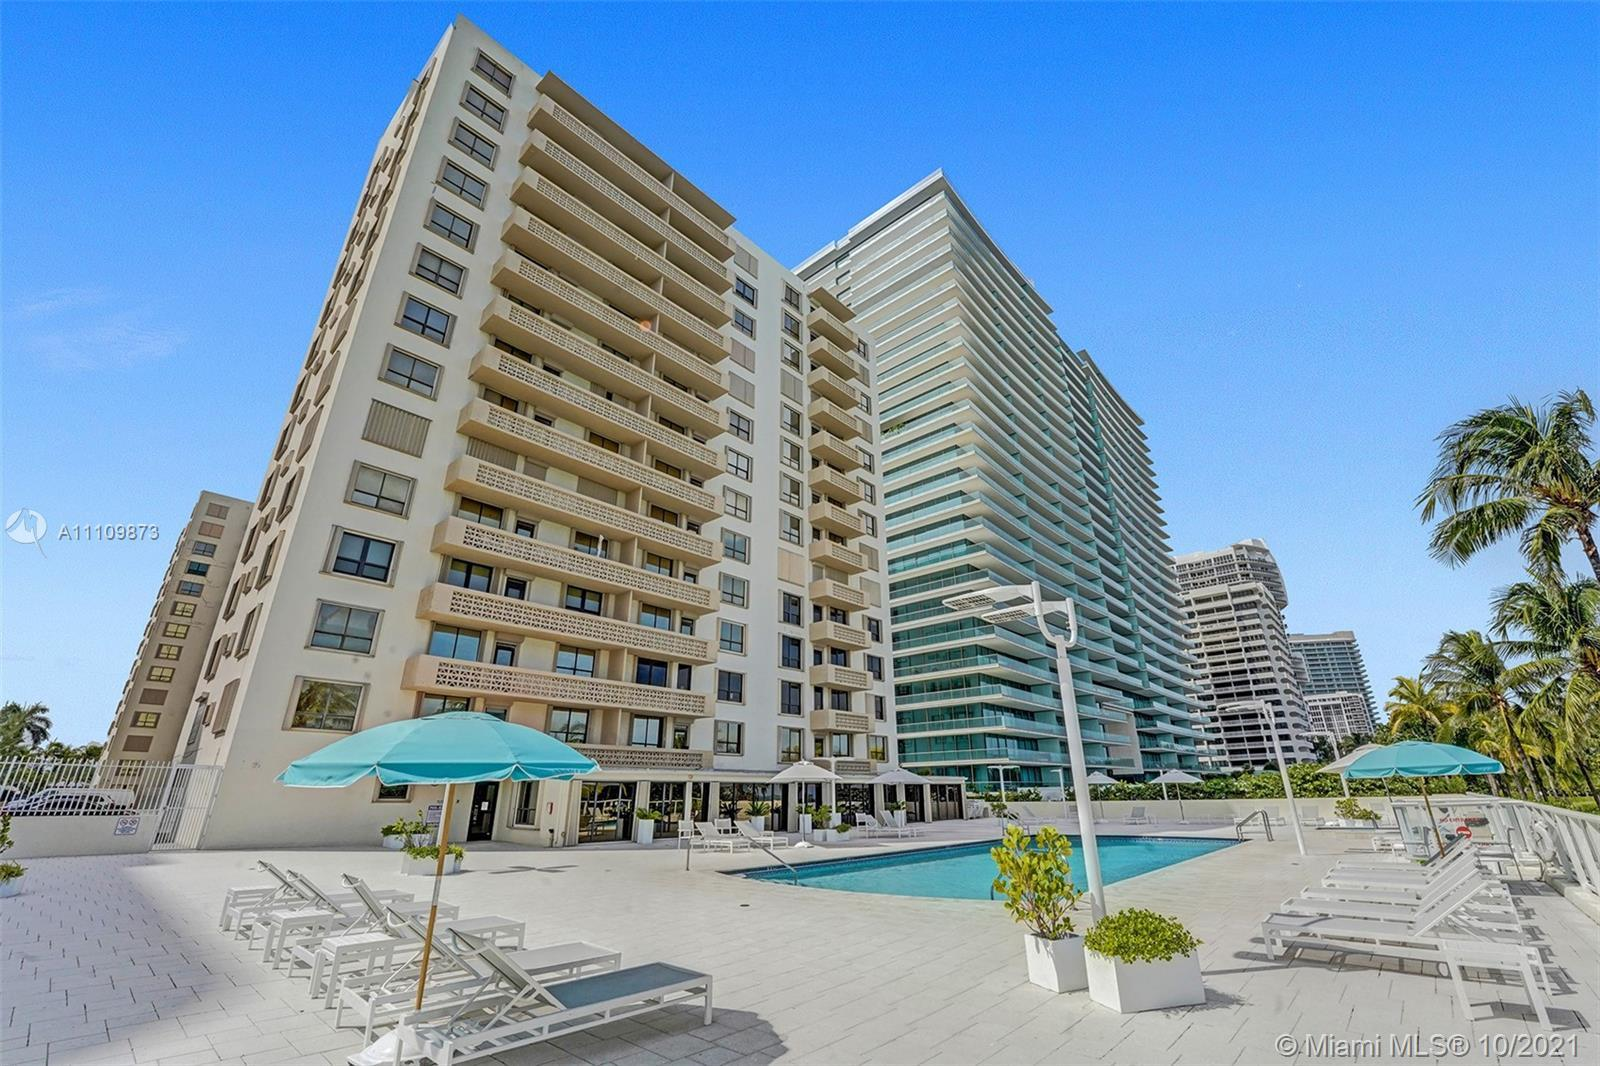 OCEANFRONT BUILDING IN DESIRABLE BAL HARBOUR, FL. LARGE 2 BEDROOM 2 BATH WITH LARGE BALCONY + HURRIC